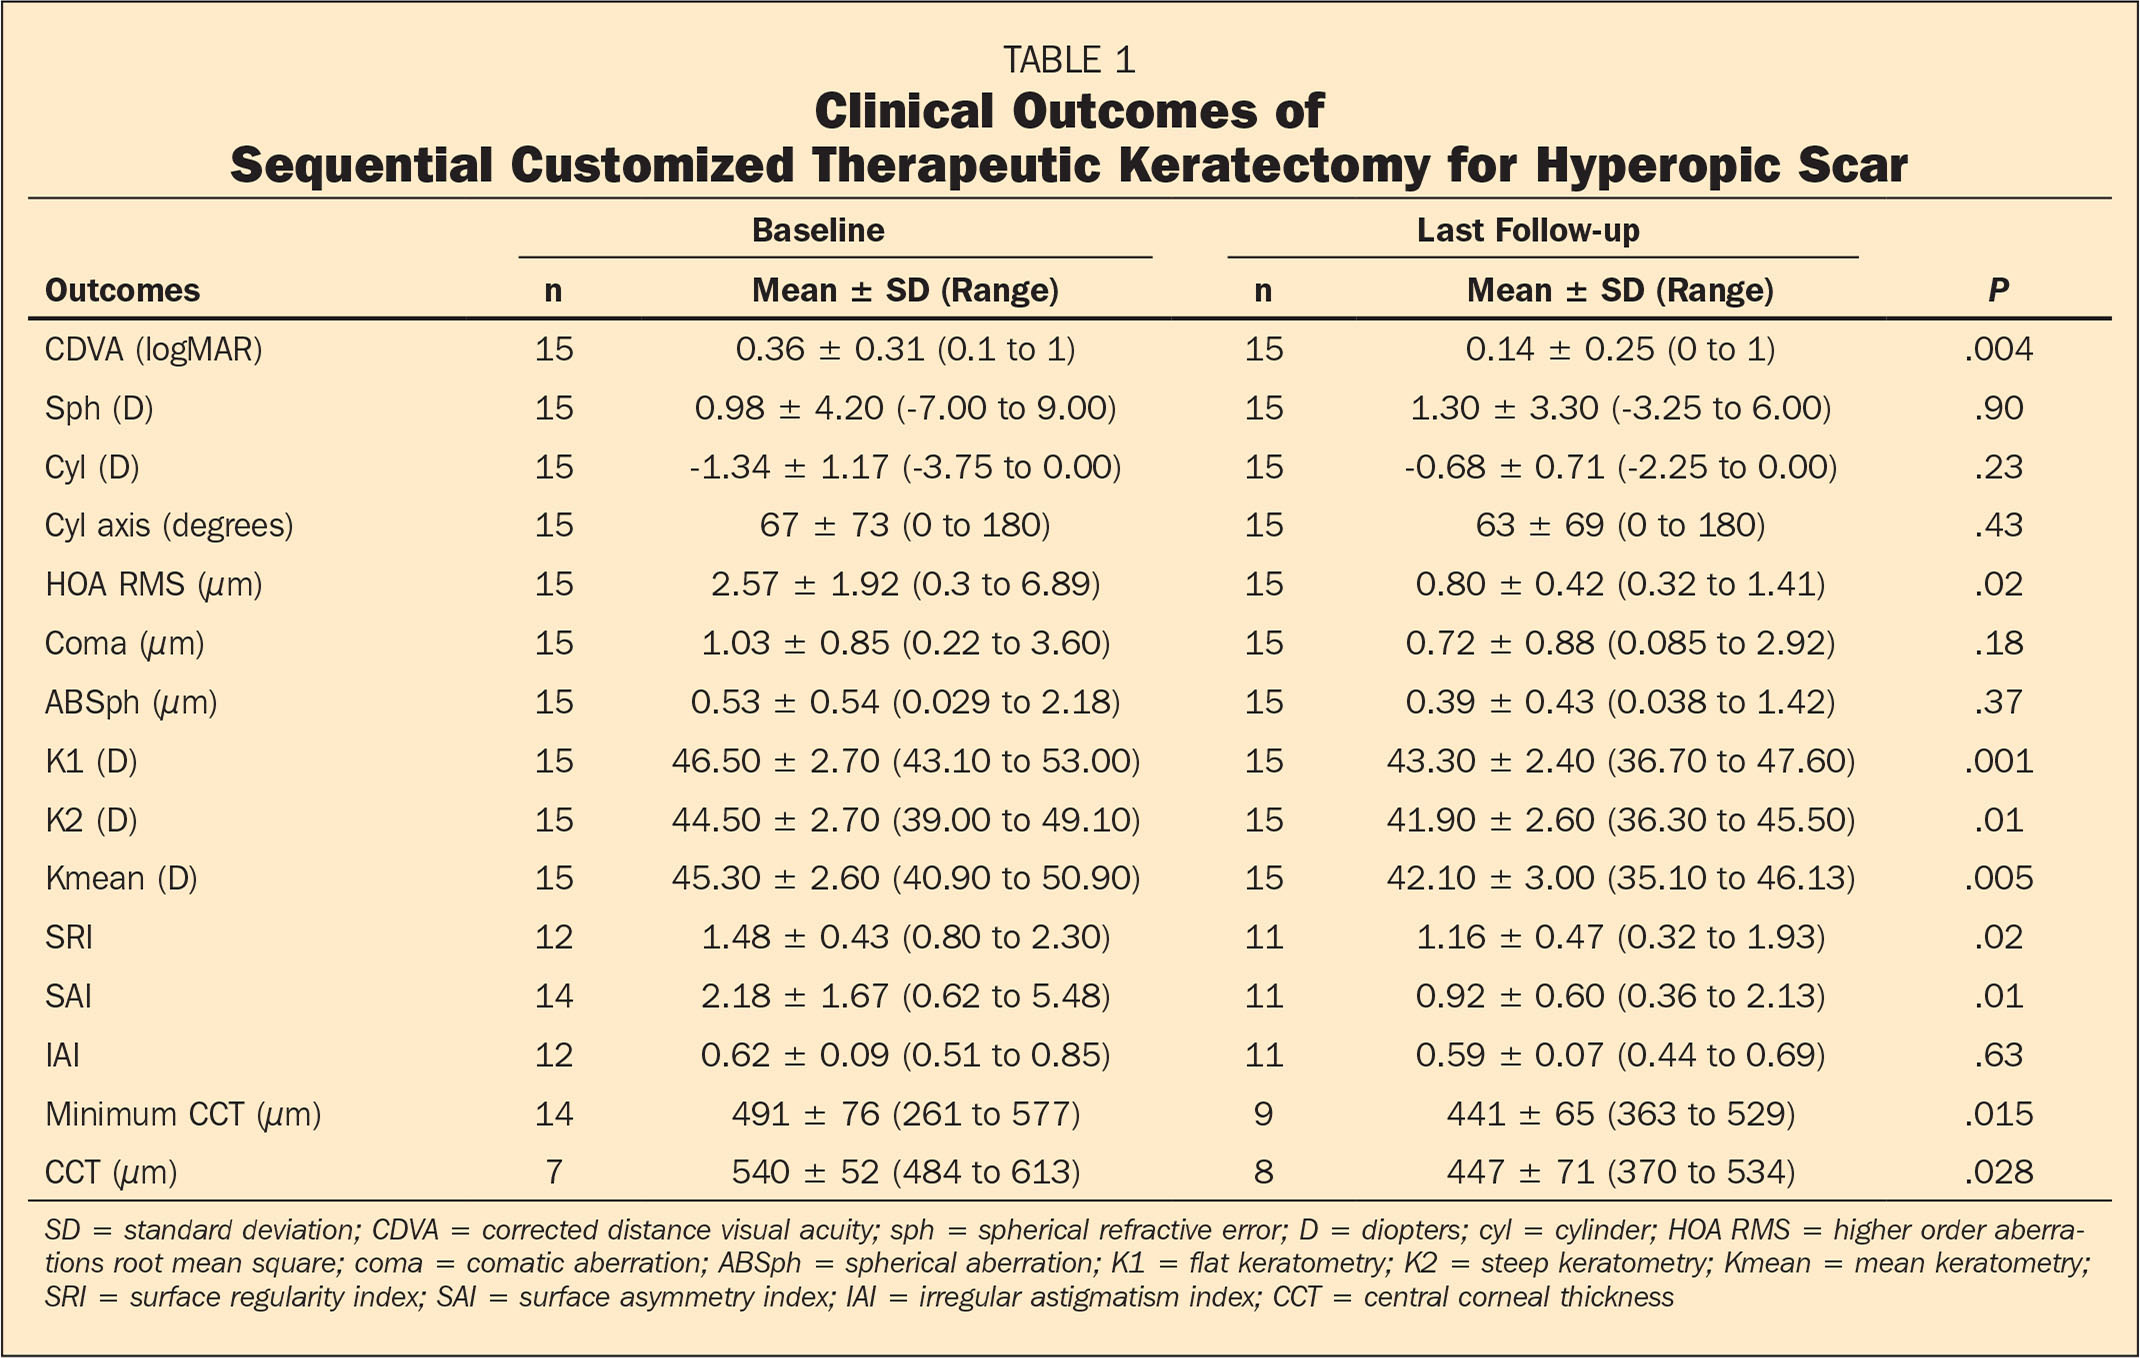 Clinical Outcomes of Sequential Customized Therapeutic Keratectomy for Hyperopic Scar